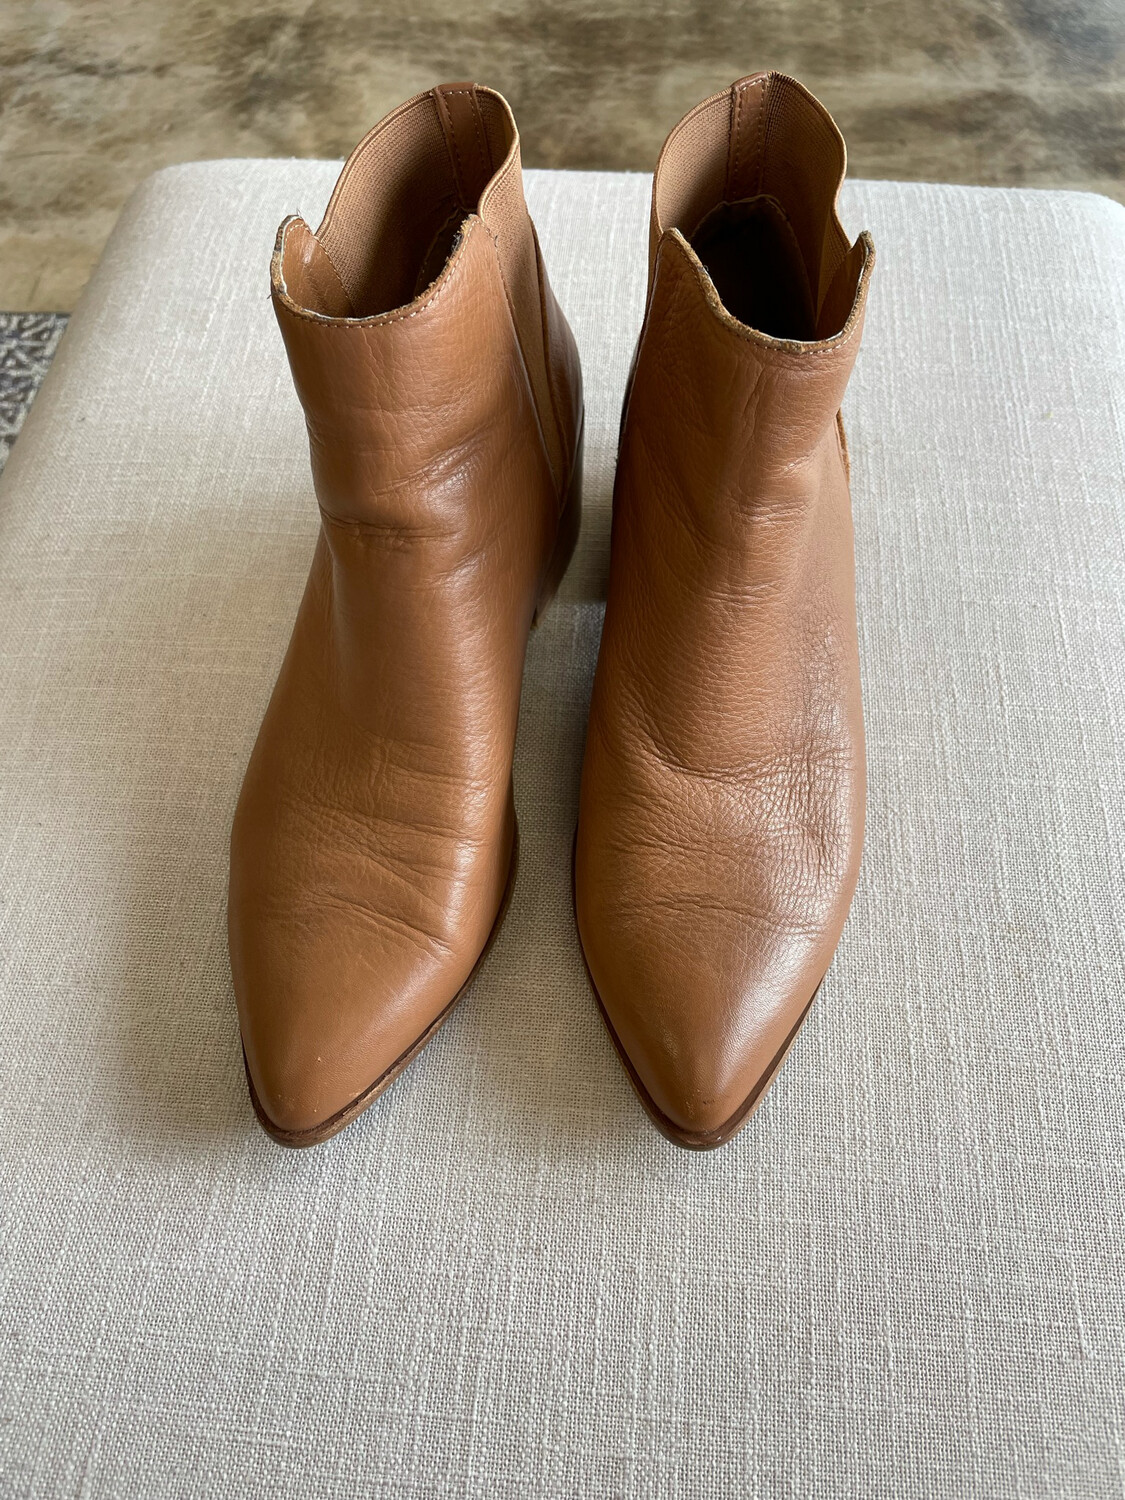 Chinese Laundry Brown Bootie - Size 8